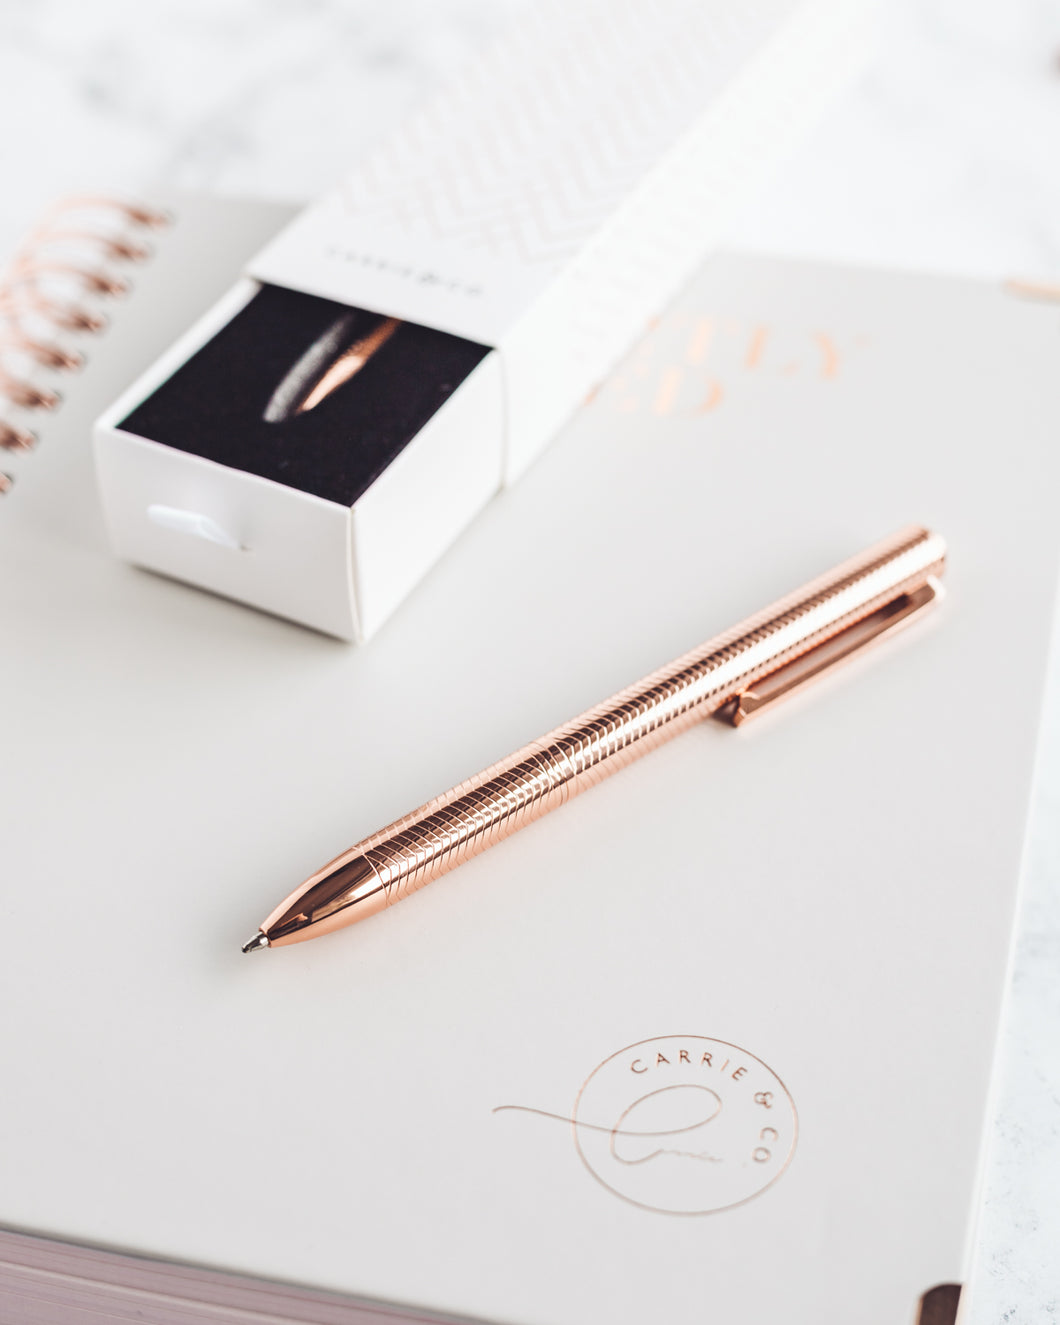 Rose Gold Pen (20% off)